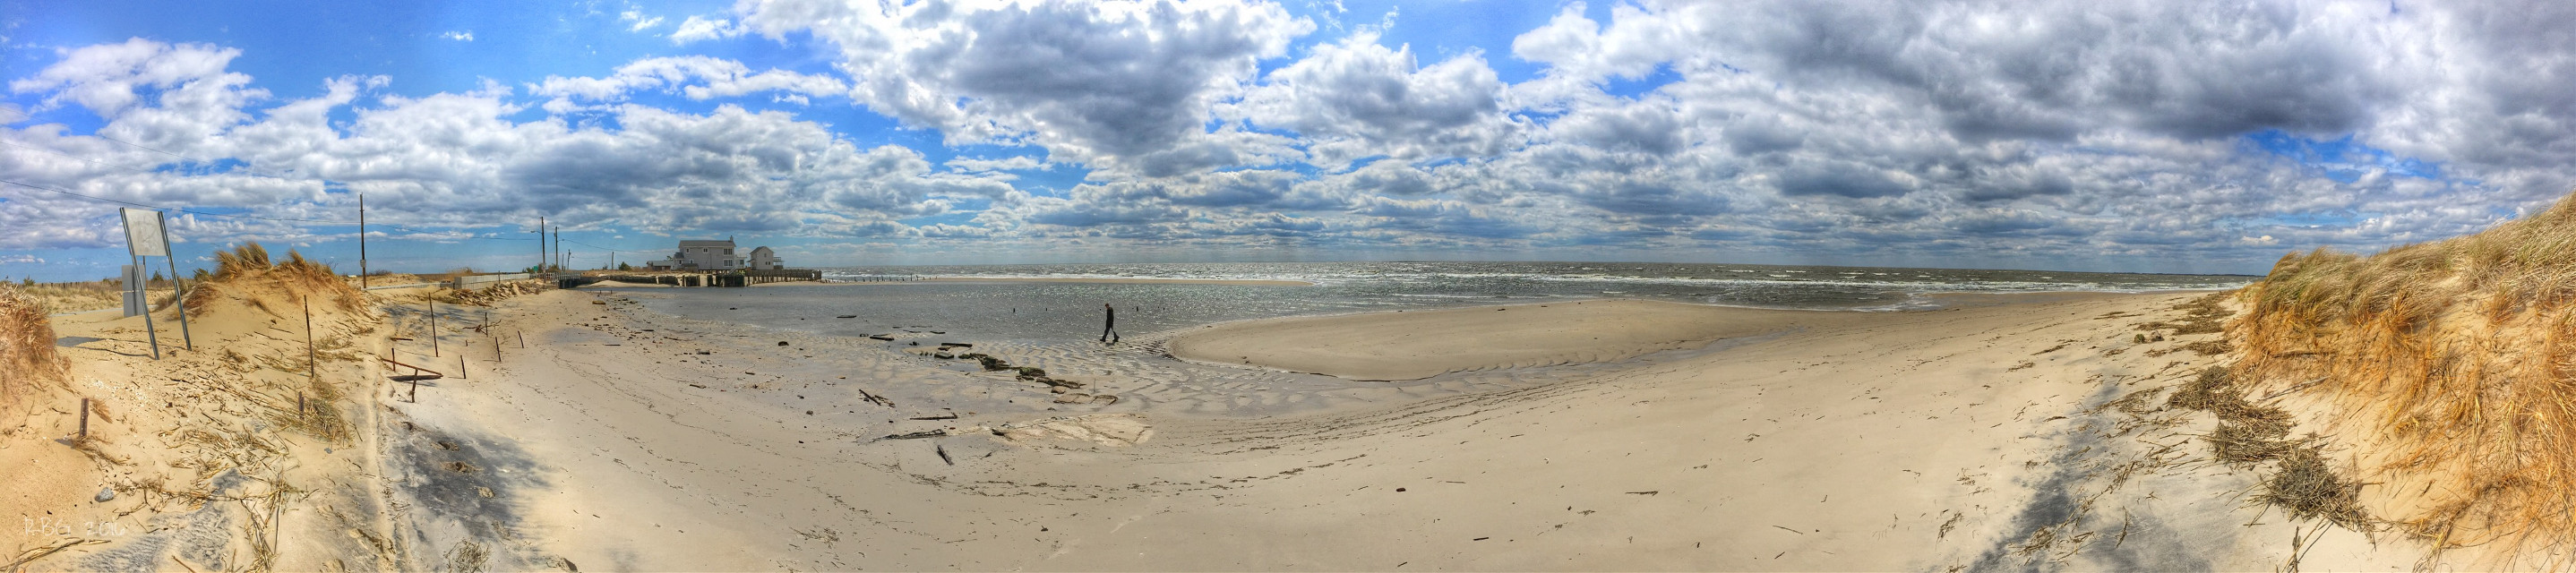 Beautiful Day 👍 😍   #iphone6s #beach #water #fortescuenewjersey #panorama #emotions #nature #waves #clouds